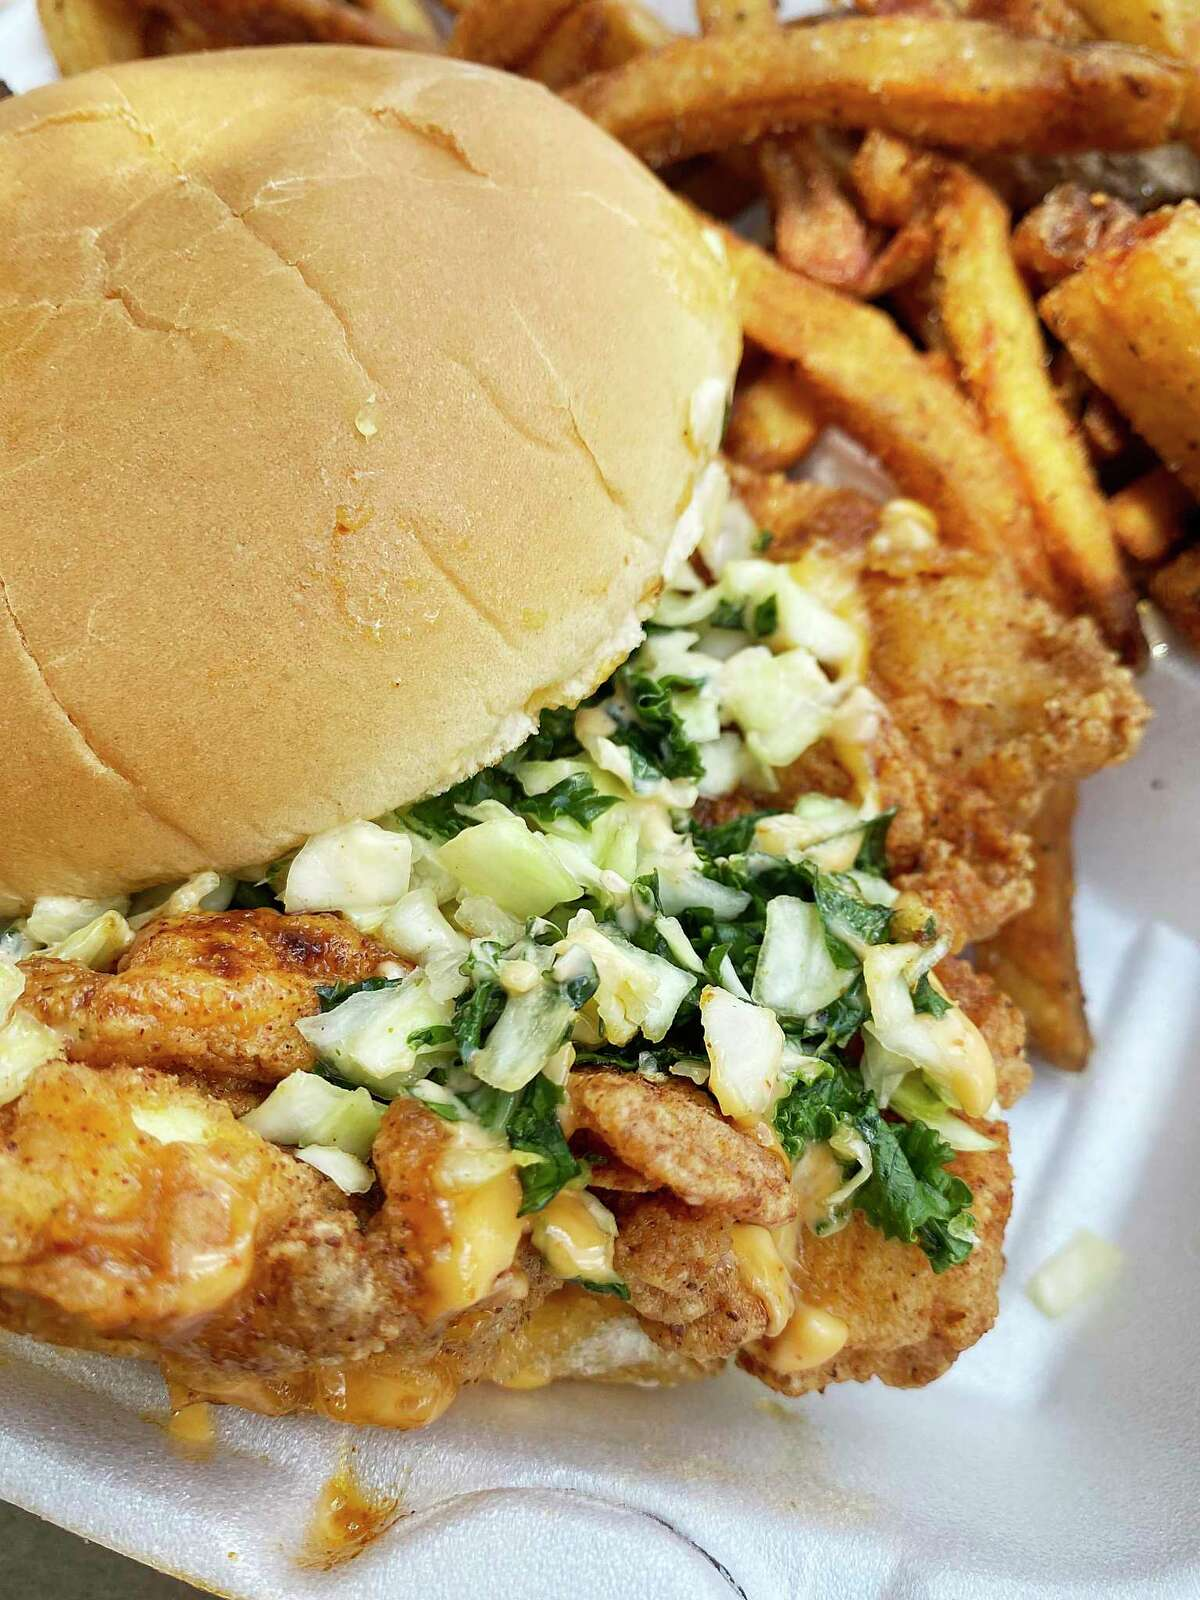 The Veg Head is a fried cauliflower sandwich with slaw, Bird Sauce and a side of fries at Chi Chi Birds Hot Chicken.